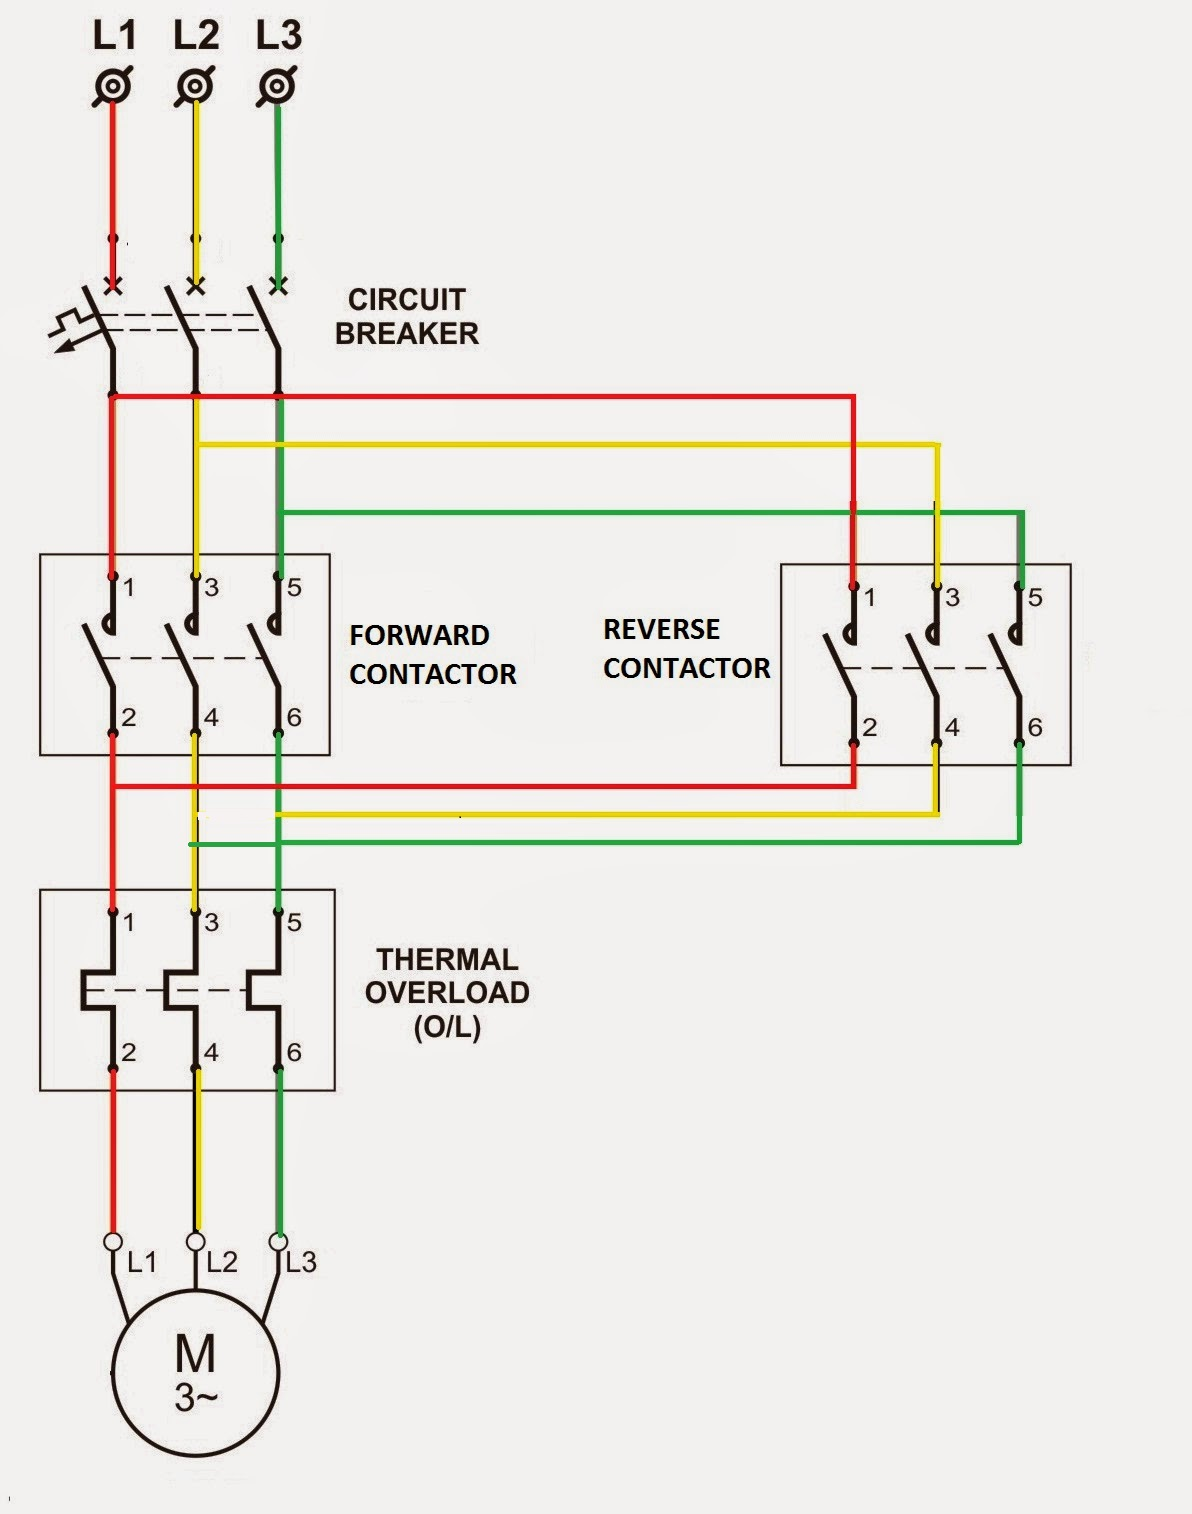 House wiring diagram 3 phase, house wiring diagram 3 phase #2 moreover house wiring diagram 3 phase #2